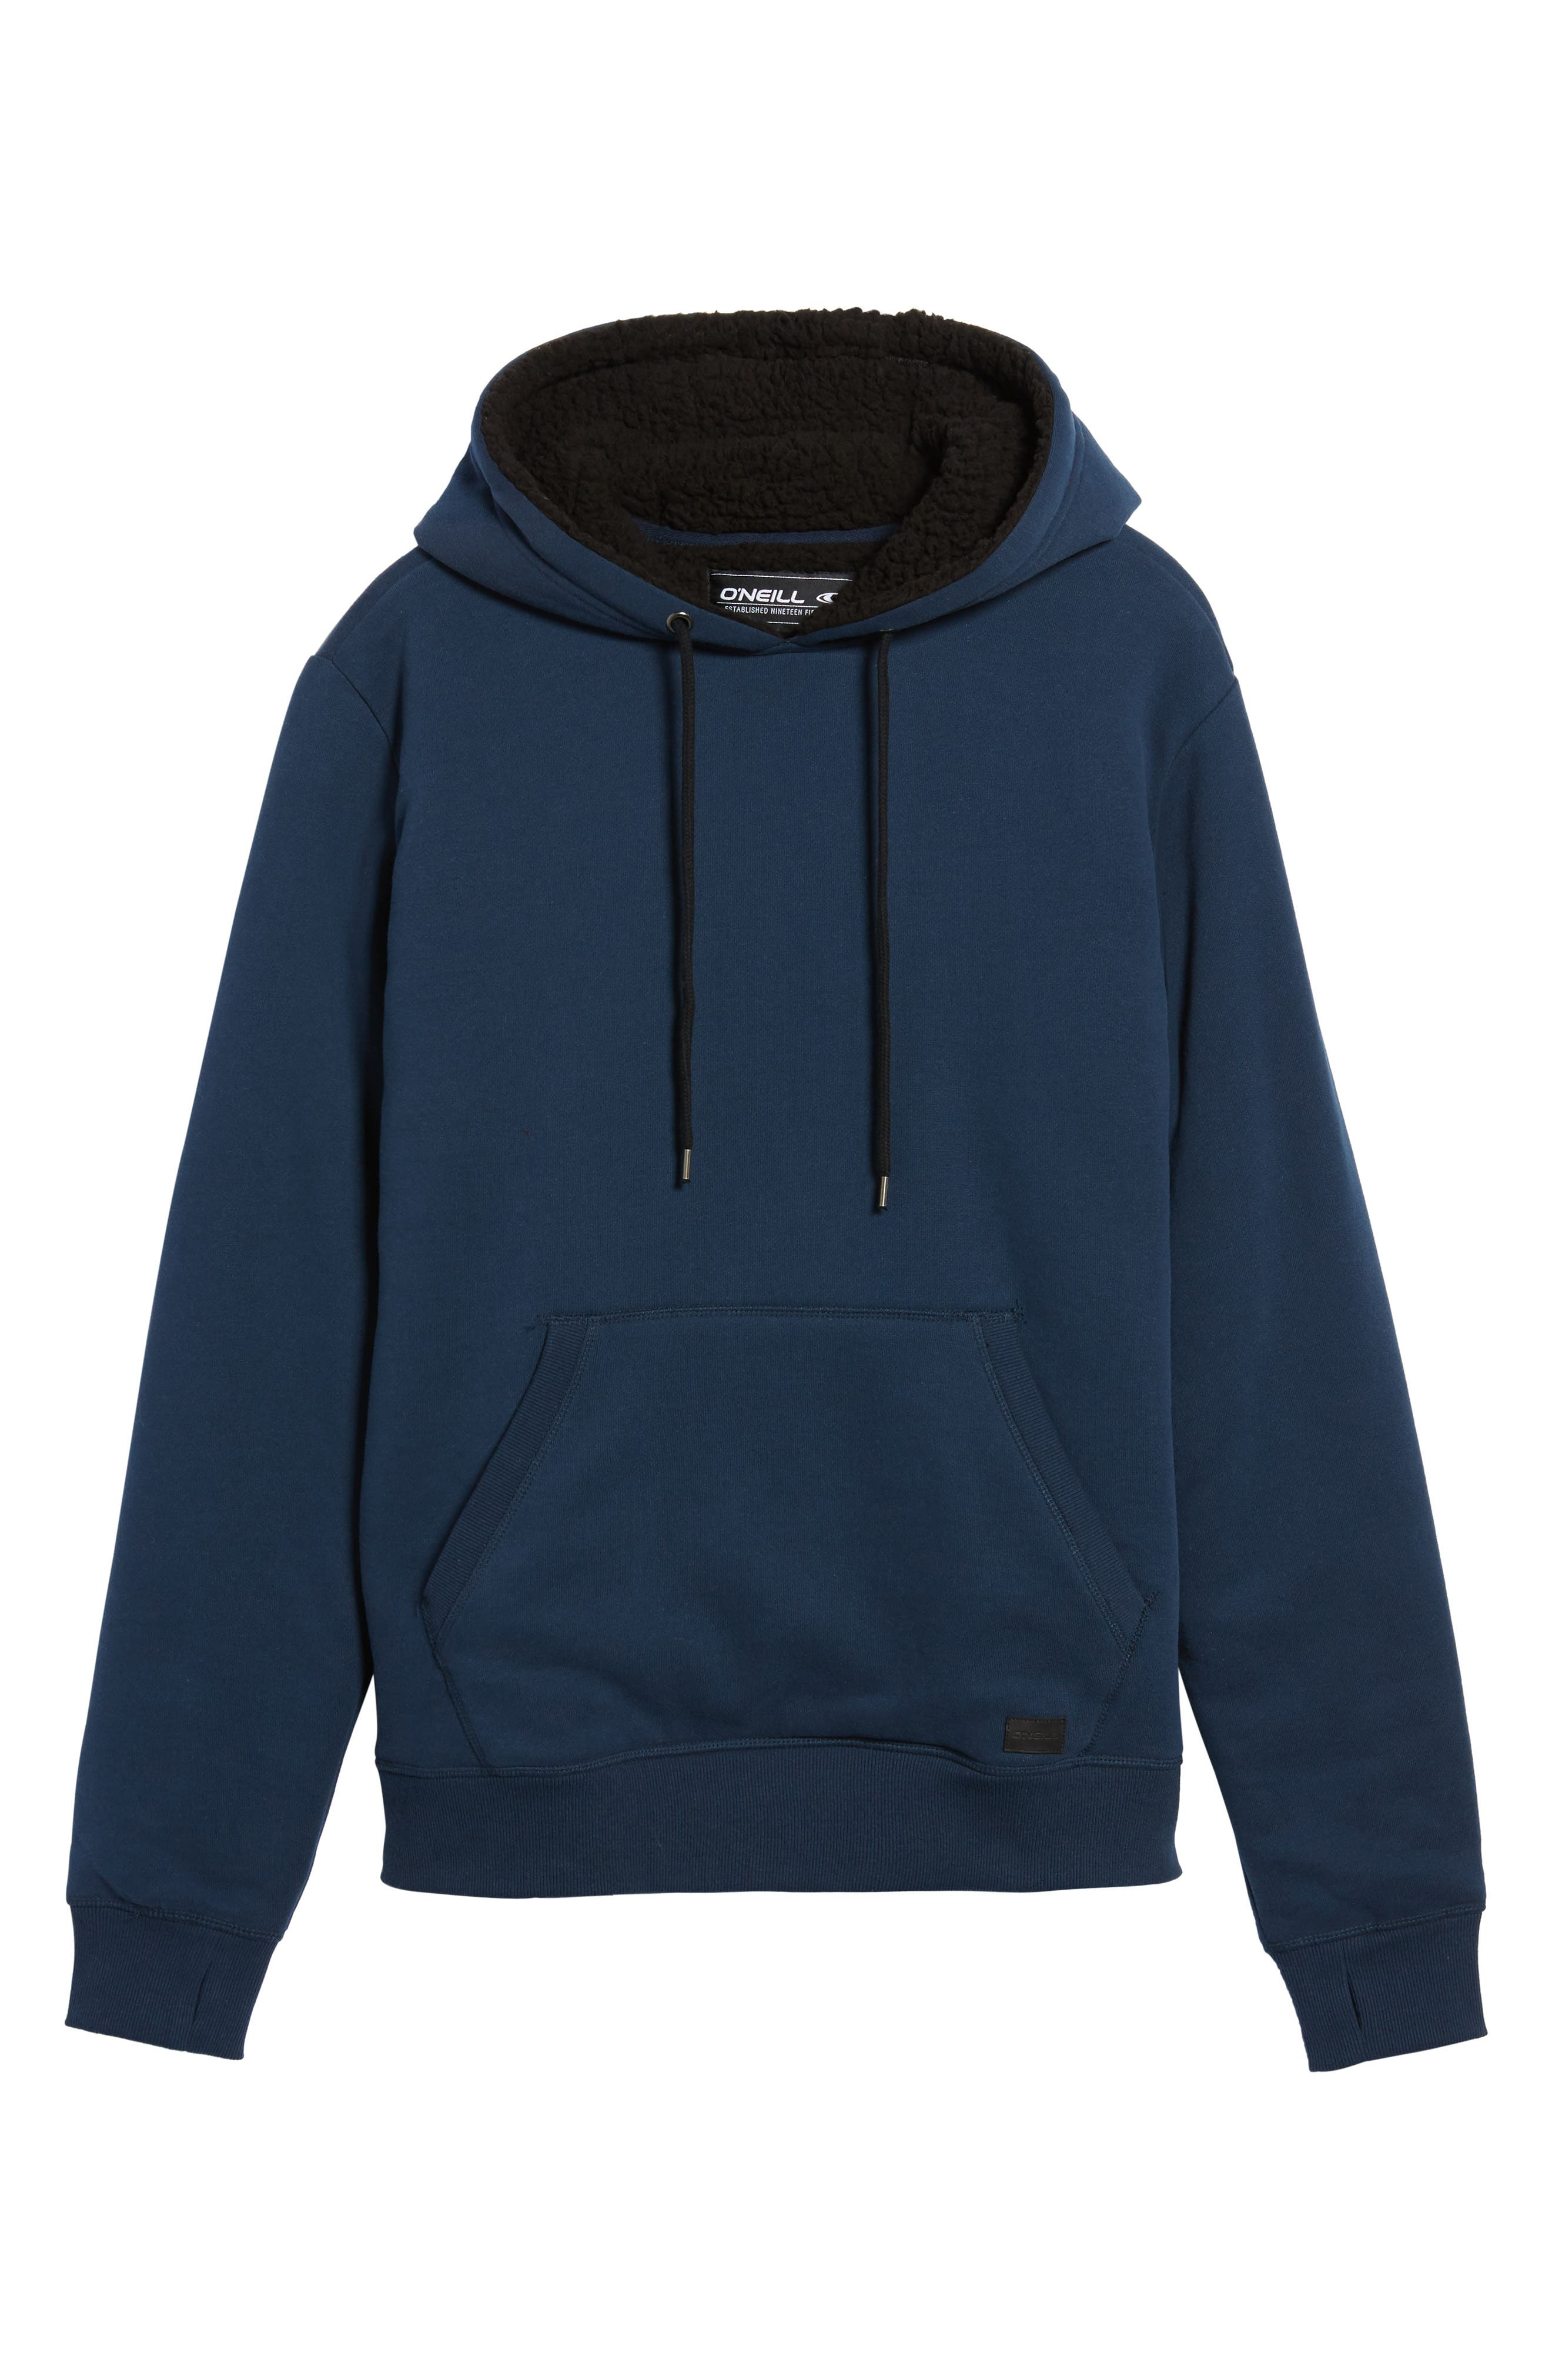 Staple Faux Shearling Trim Hoodie,                             Alternate thumbnail 6, color,                             Navy